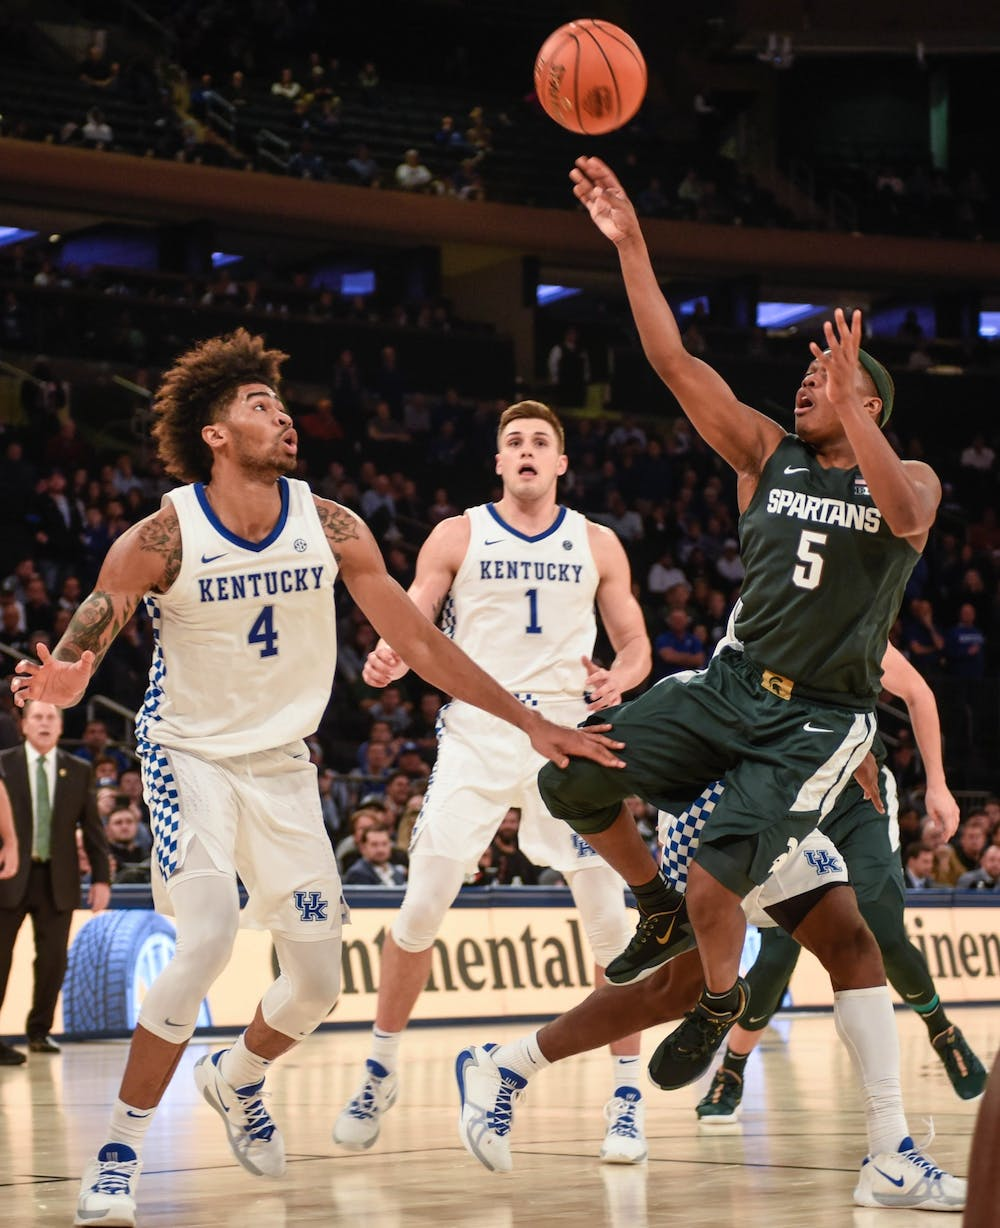 Senior guard Cassius Winston (5) shoots the ball during the game against Kentucky at the State Farm Champions Classic at Madison Square Garden on Nov. 5, 2019. The Spartans fell to the Wildcats, 69-62.